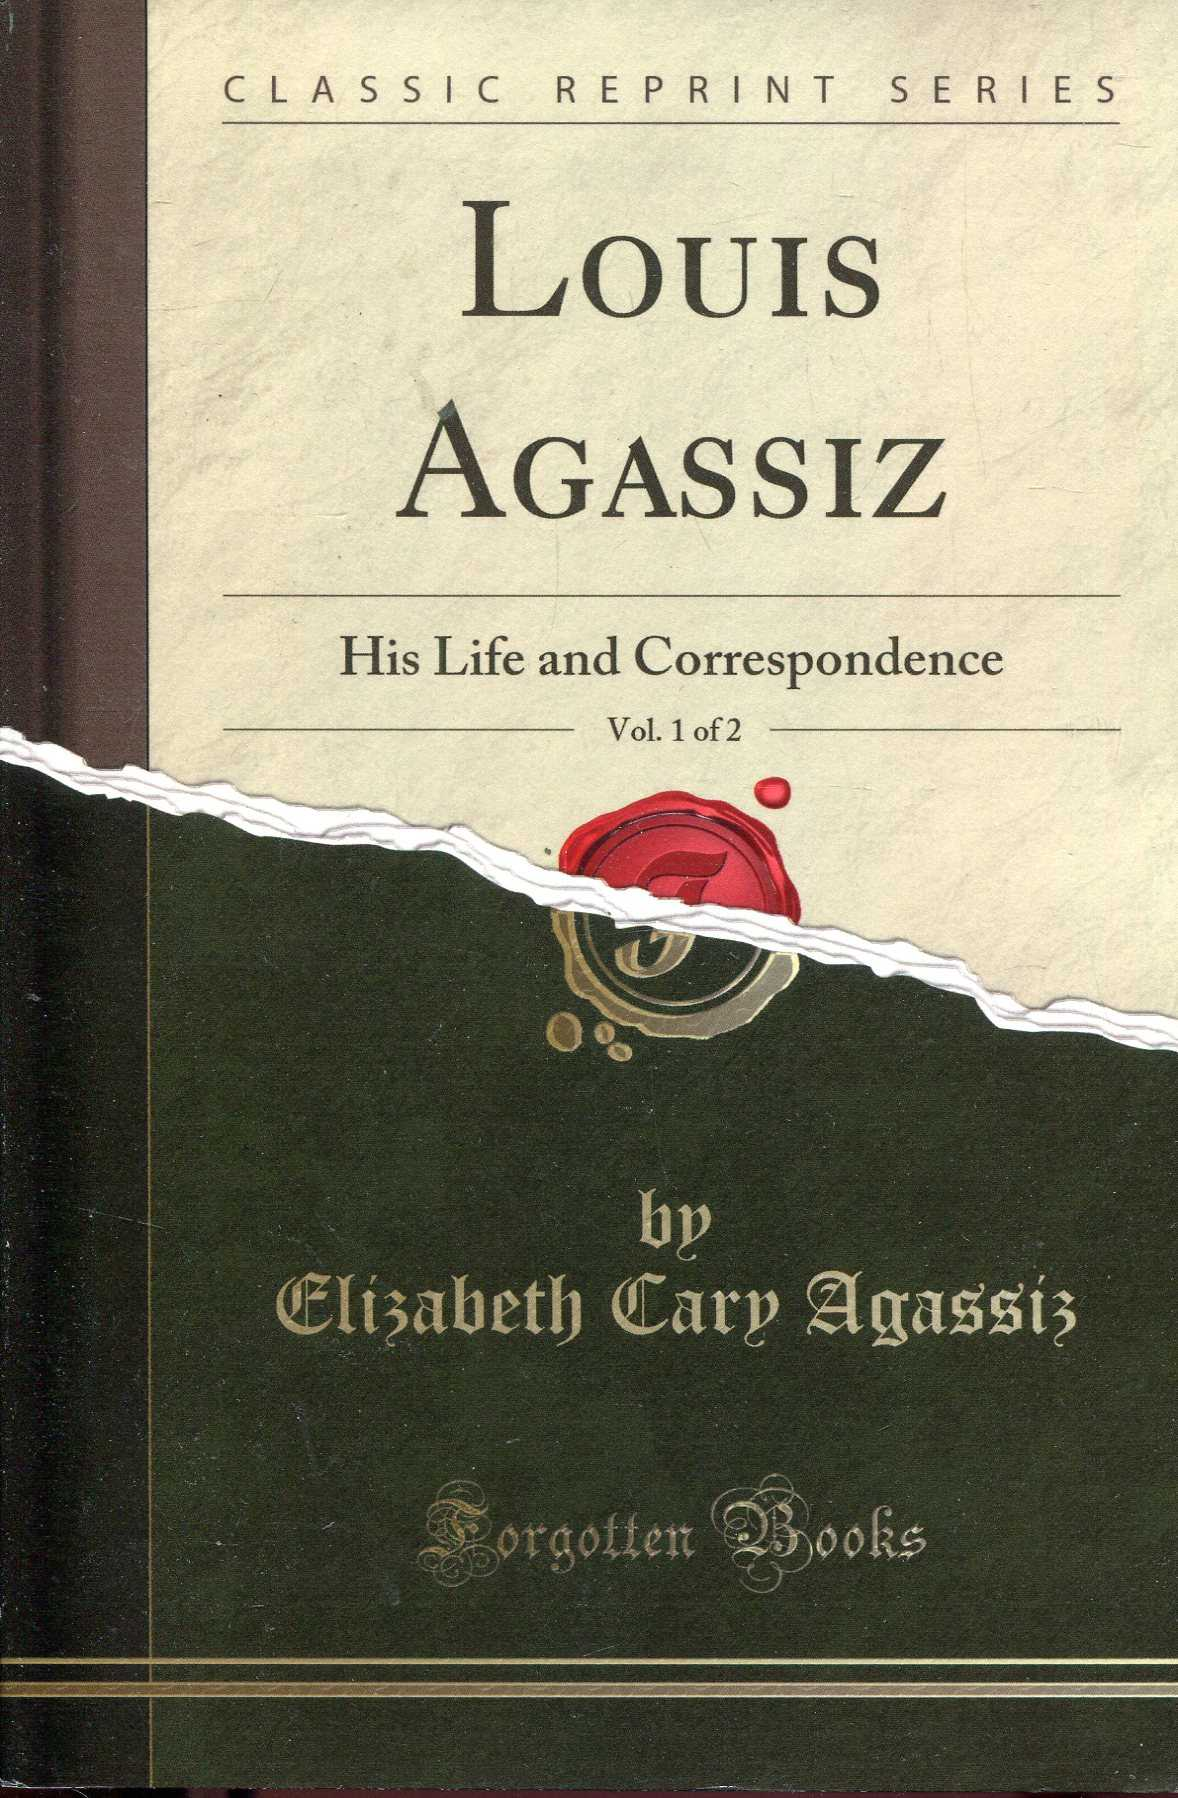 Image for Louis Agassiz, Vol. 1 of 2 : His Life and Correspondence